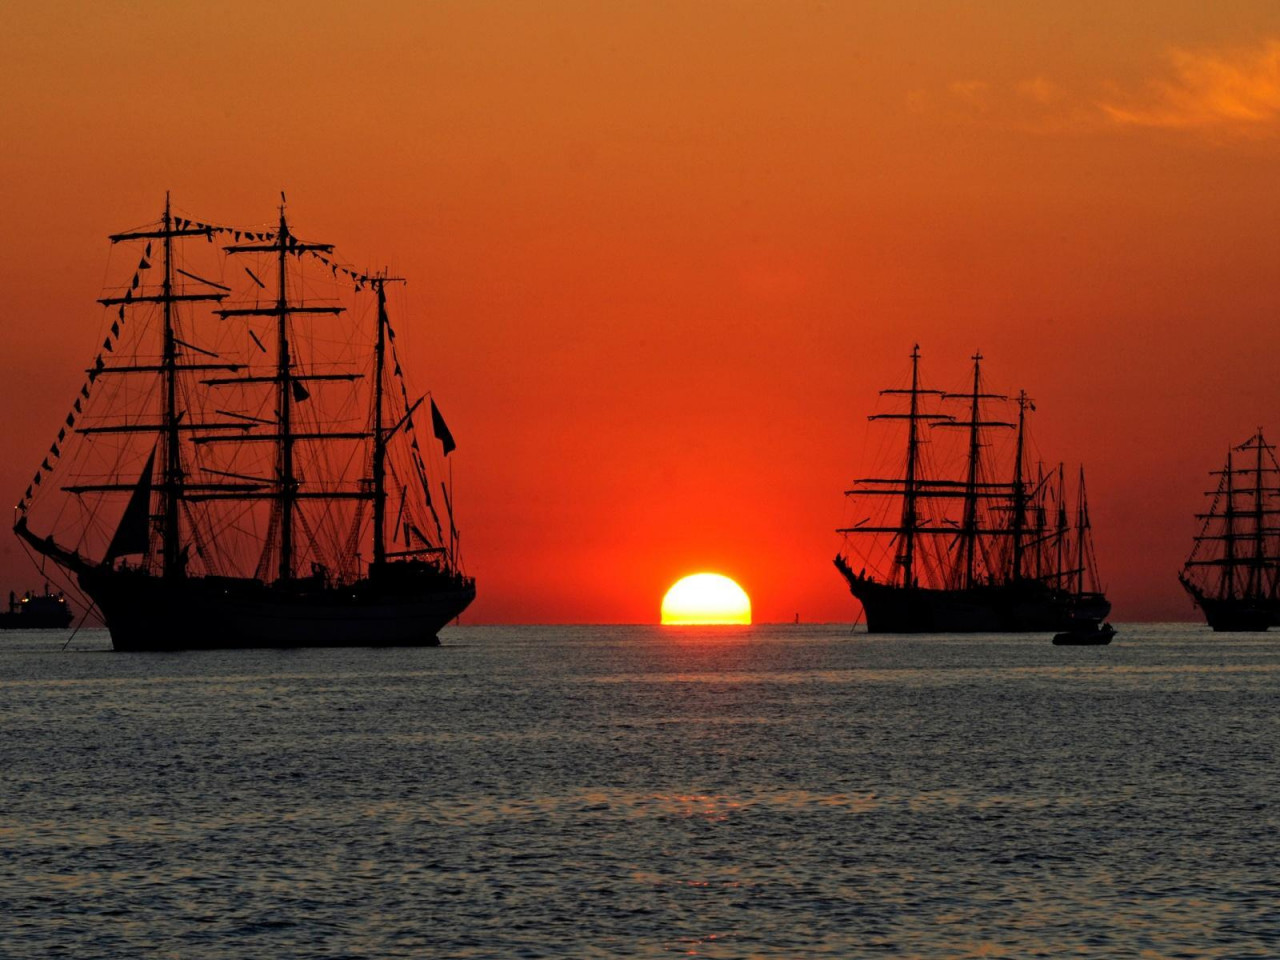 At Sea Tall Ships At Sea In Sunset Hd Desktop Wallpaper